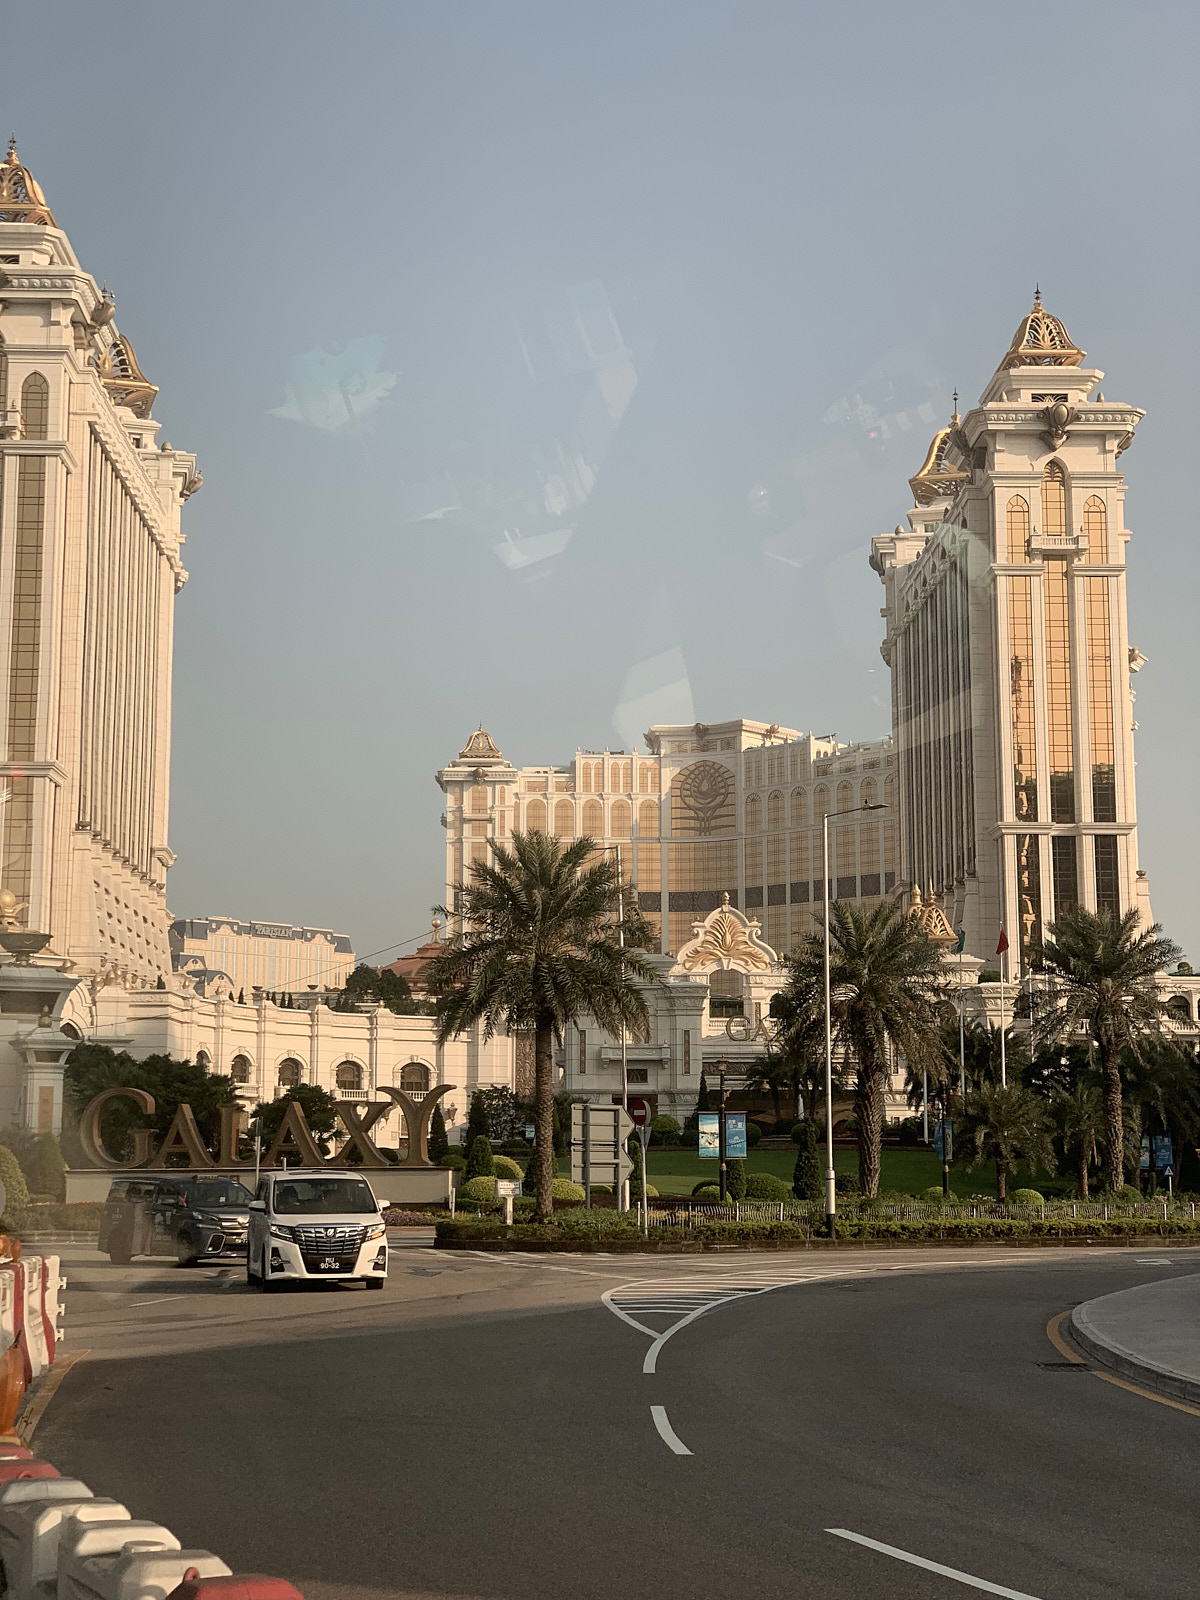 Macau – Las Vegas of the East